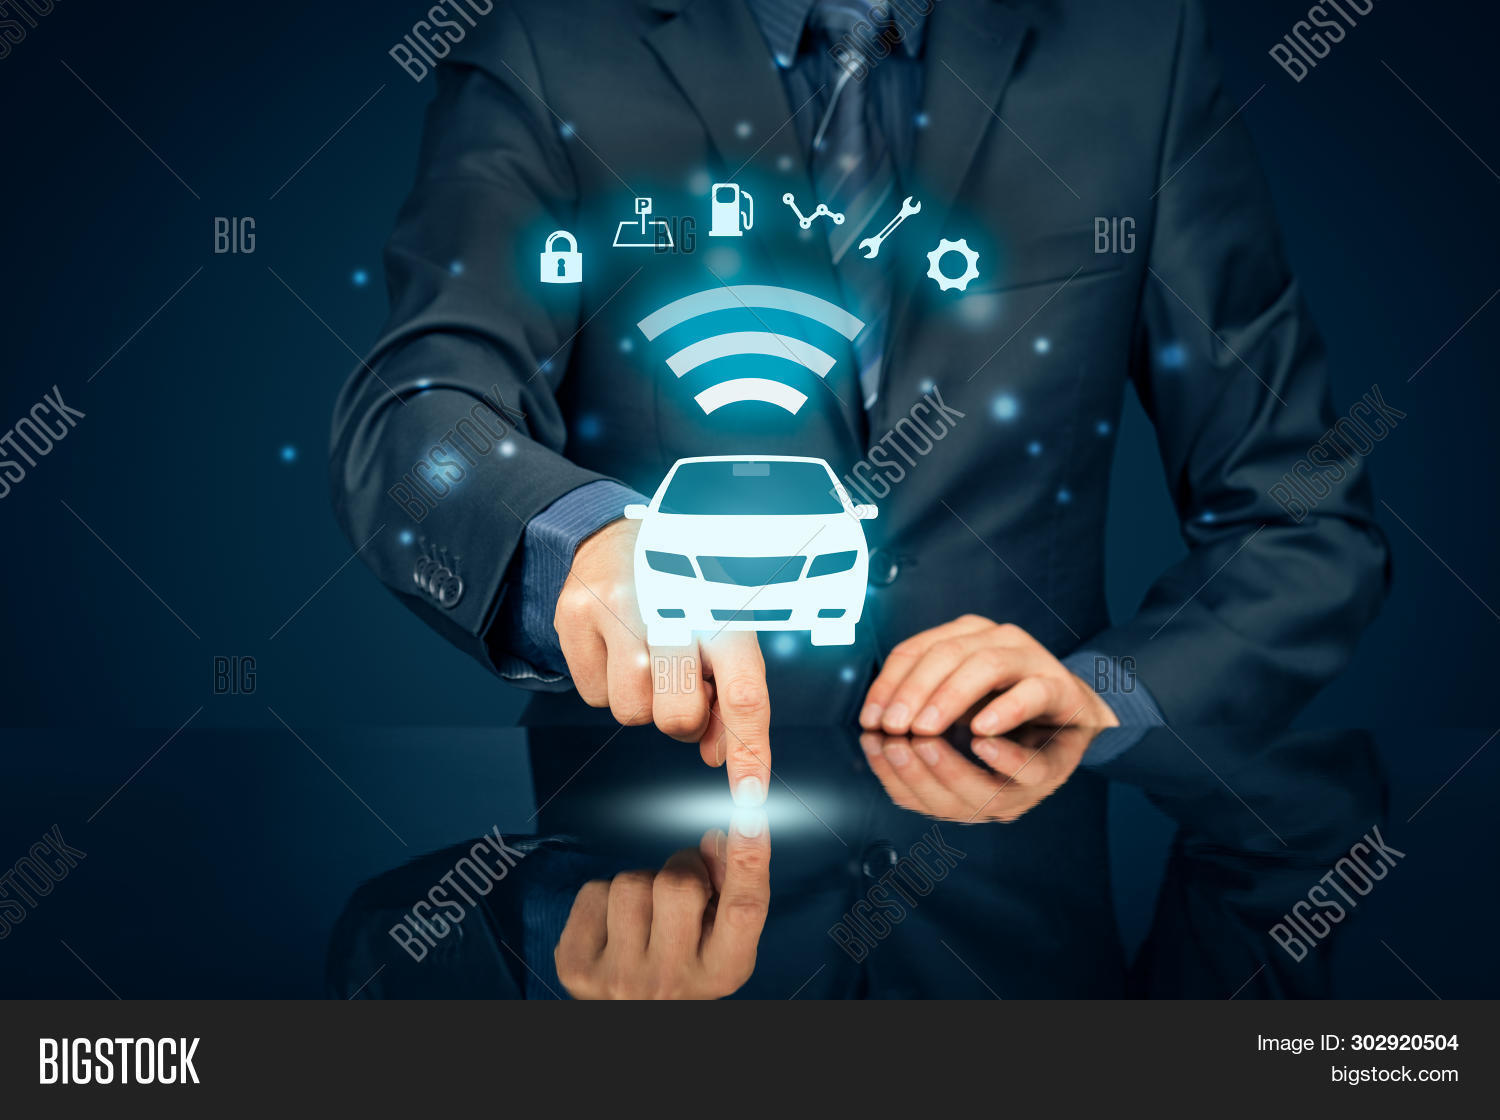 analysis,auto,automobile,automotive,businessman,car,clever,communication,concept,conceptual,connected,drive,driver,e-mobility,electronic,fuel,futuristic,hi-tech,icon,information,innovation,innovative,intelligent,internet,iot,locate,location,mobile,modern,of,parking,phone,security,service,settings,smart,symbol,system,technology,things,transport,transportation,vehicle,wireless